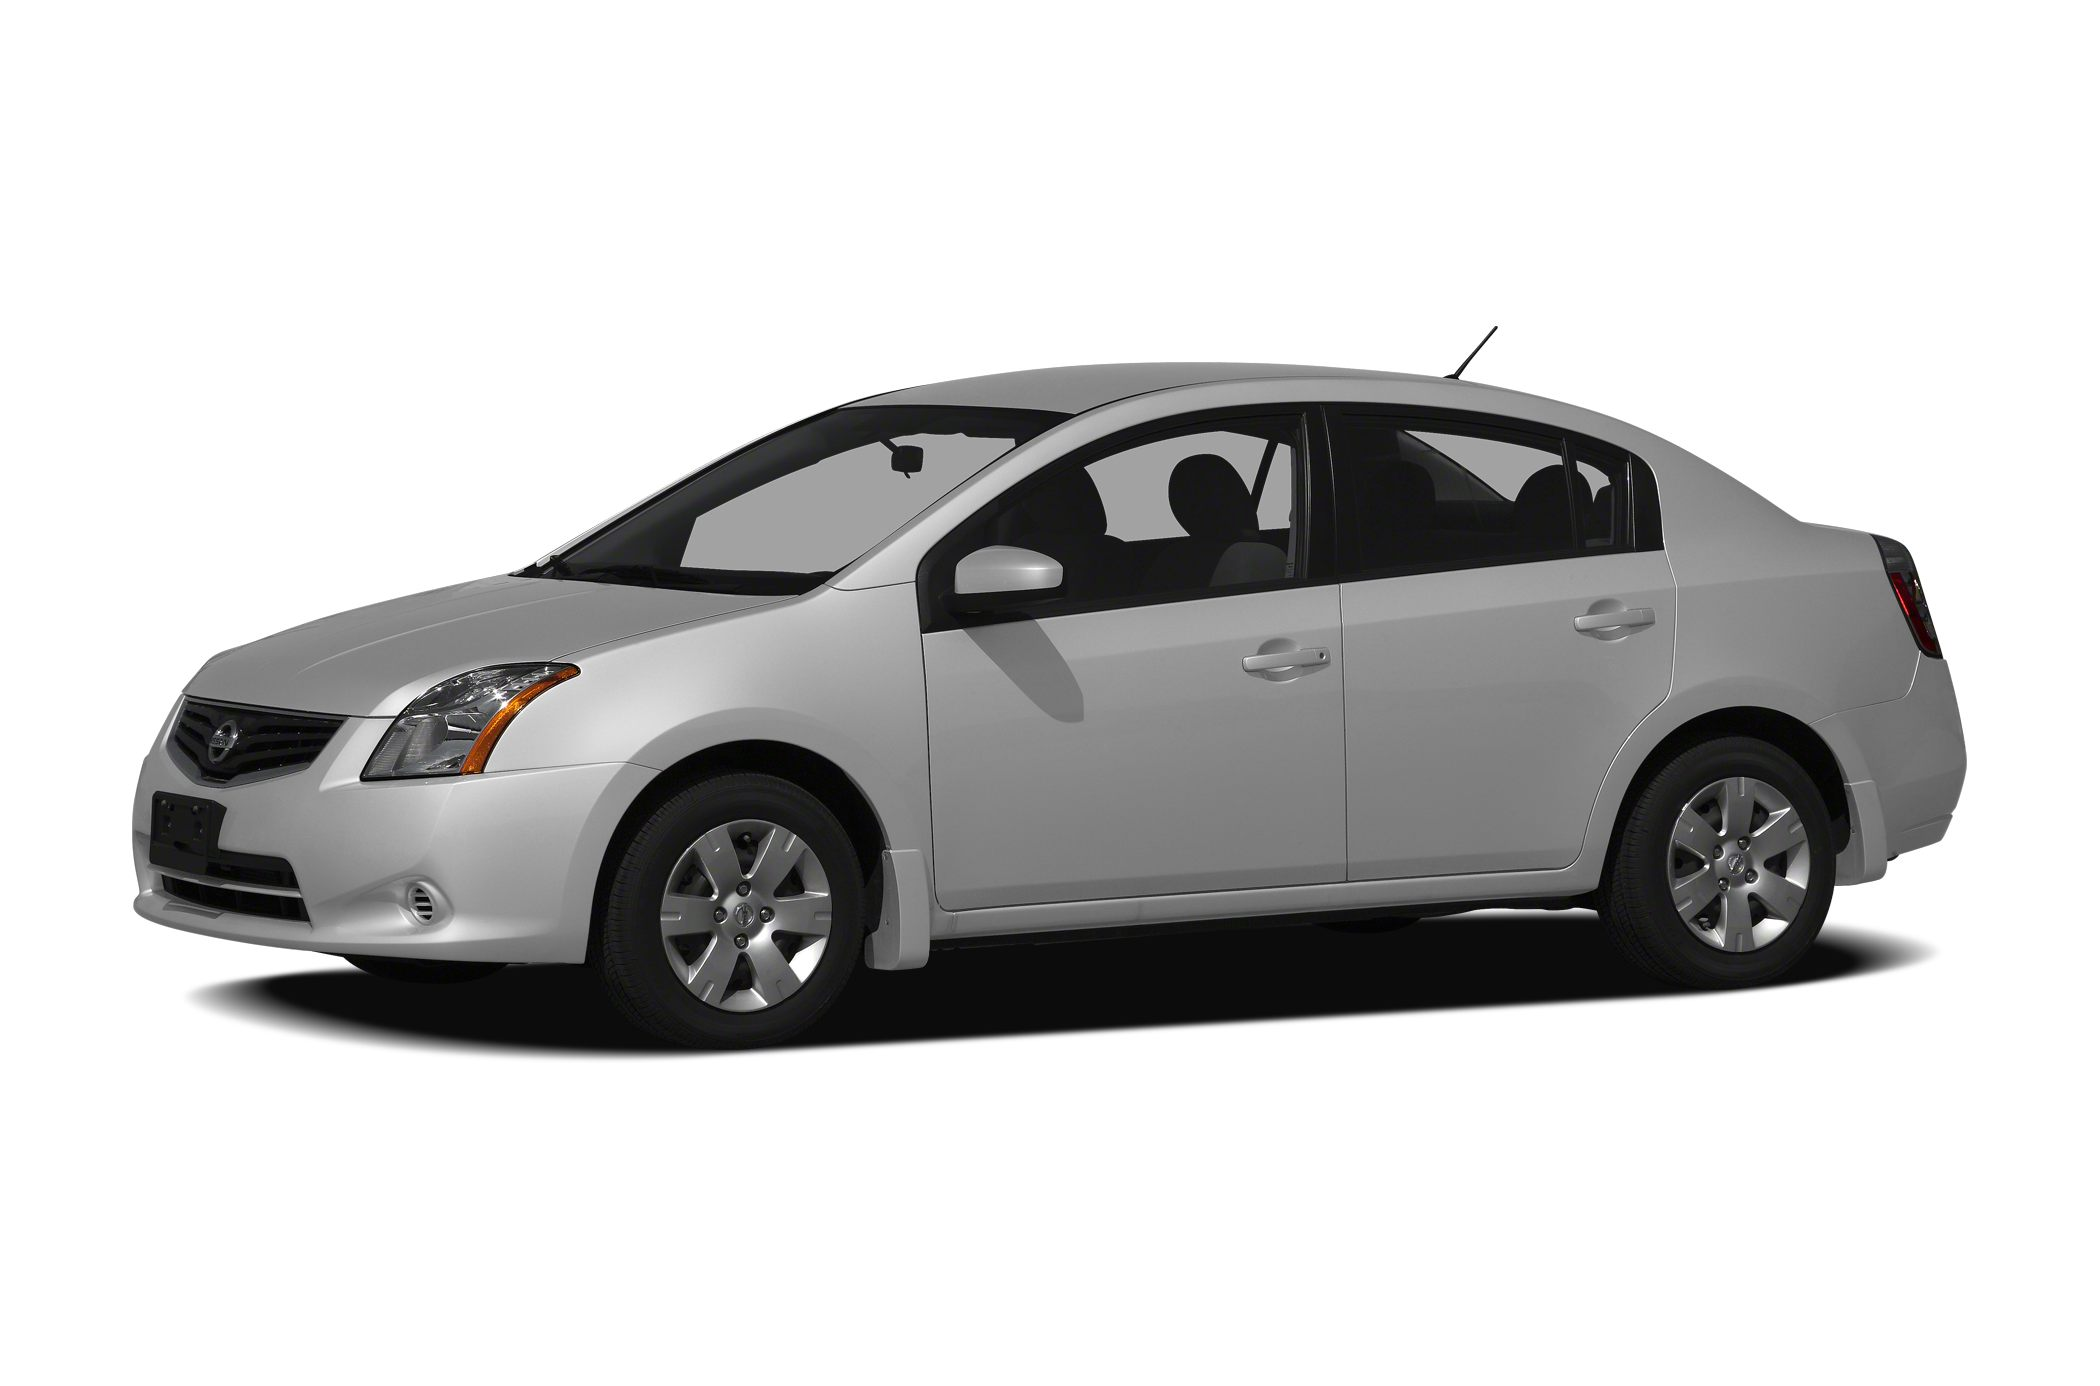 2010 Nissan Sentra 2.0 Sedan for sale in Martinsville for $9,995 with 64,980 miles.